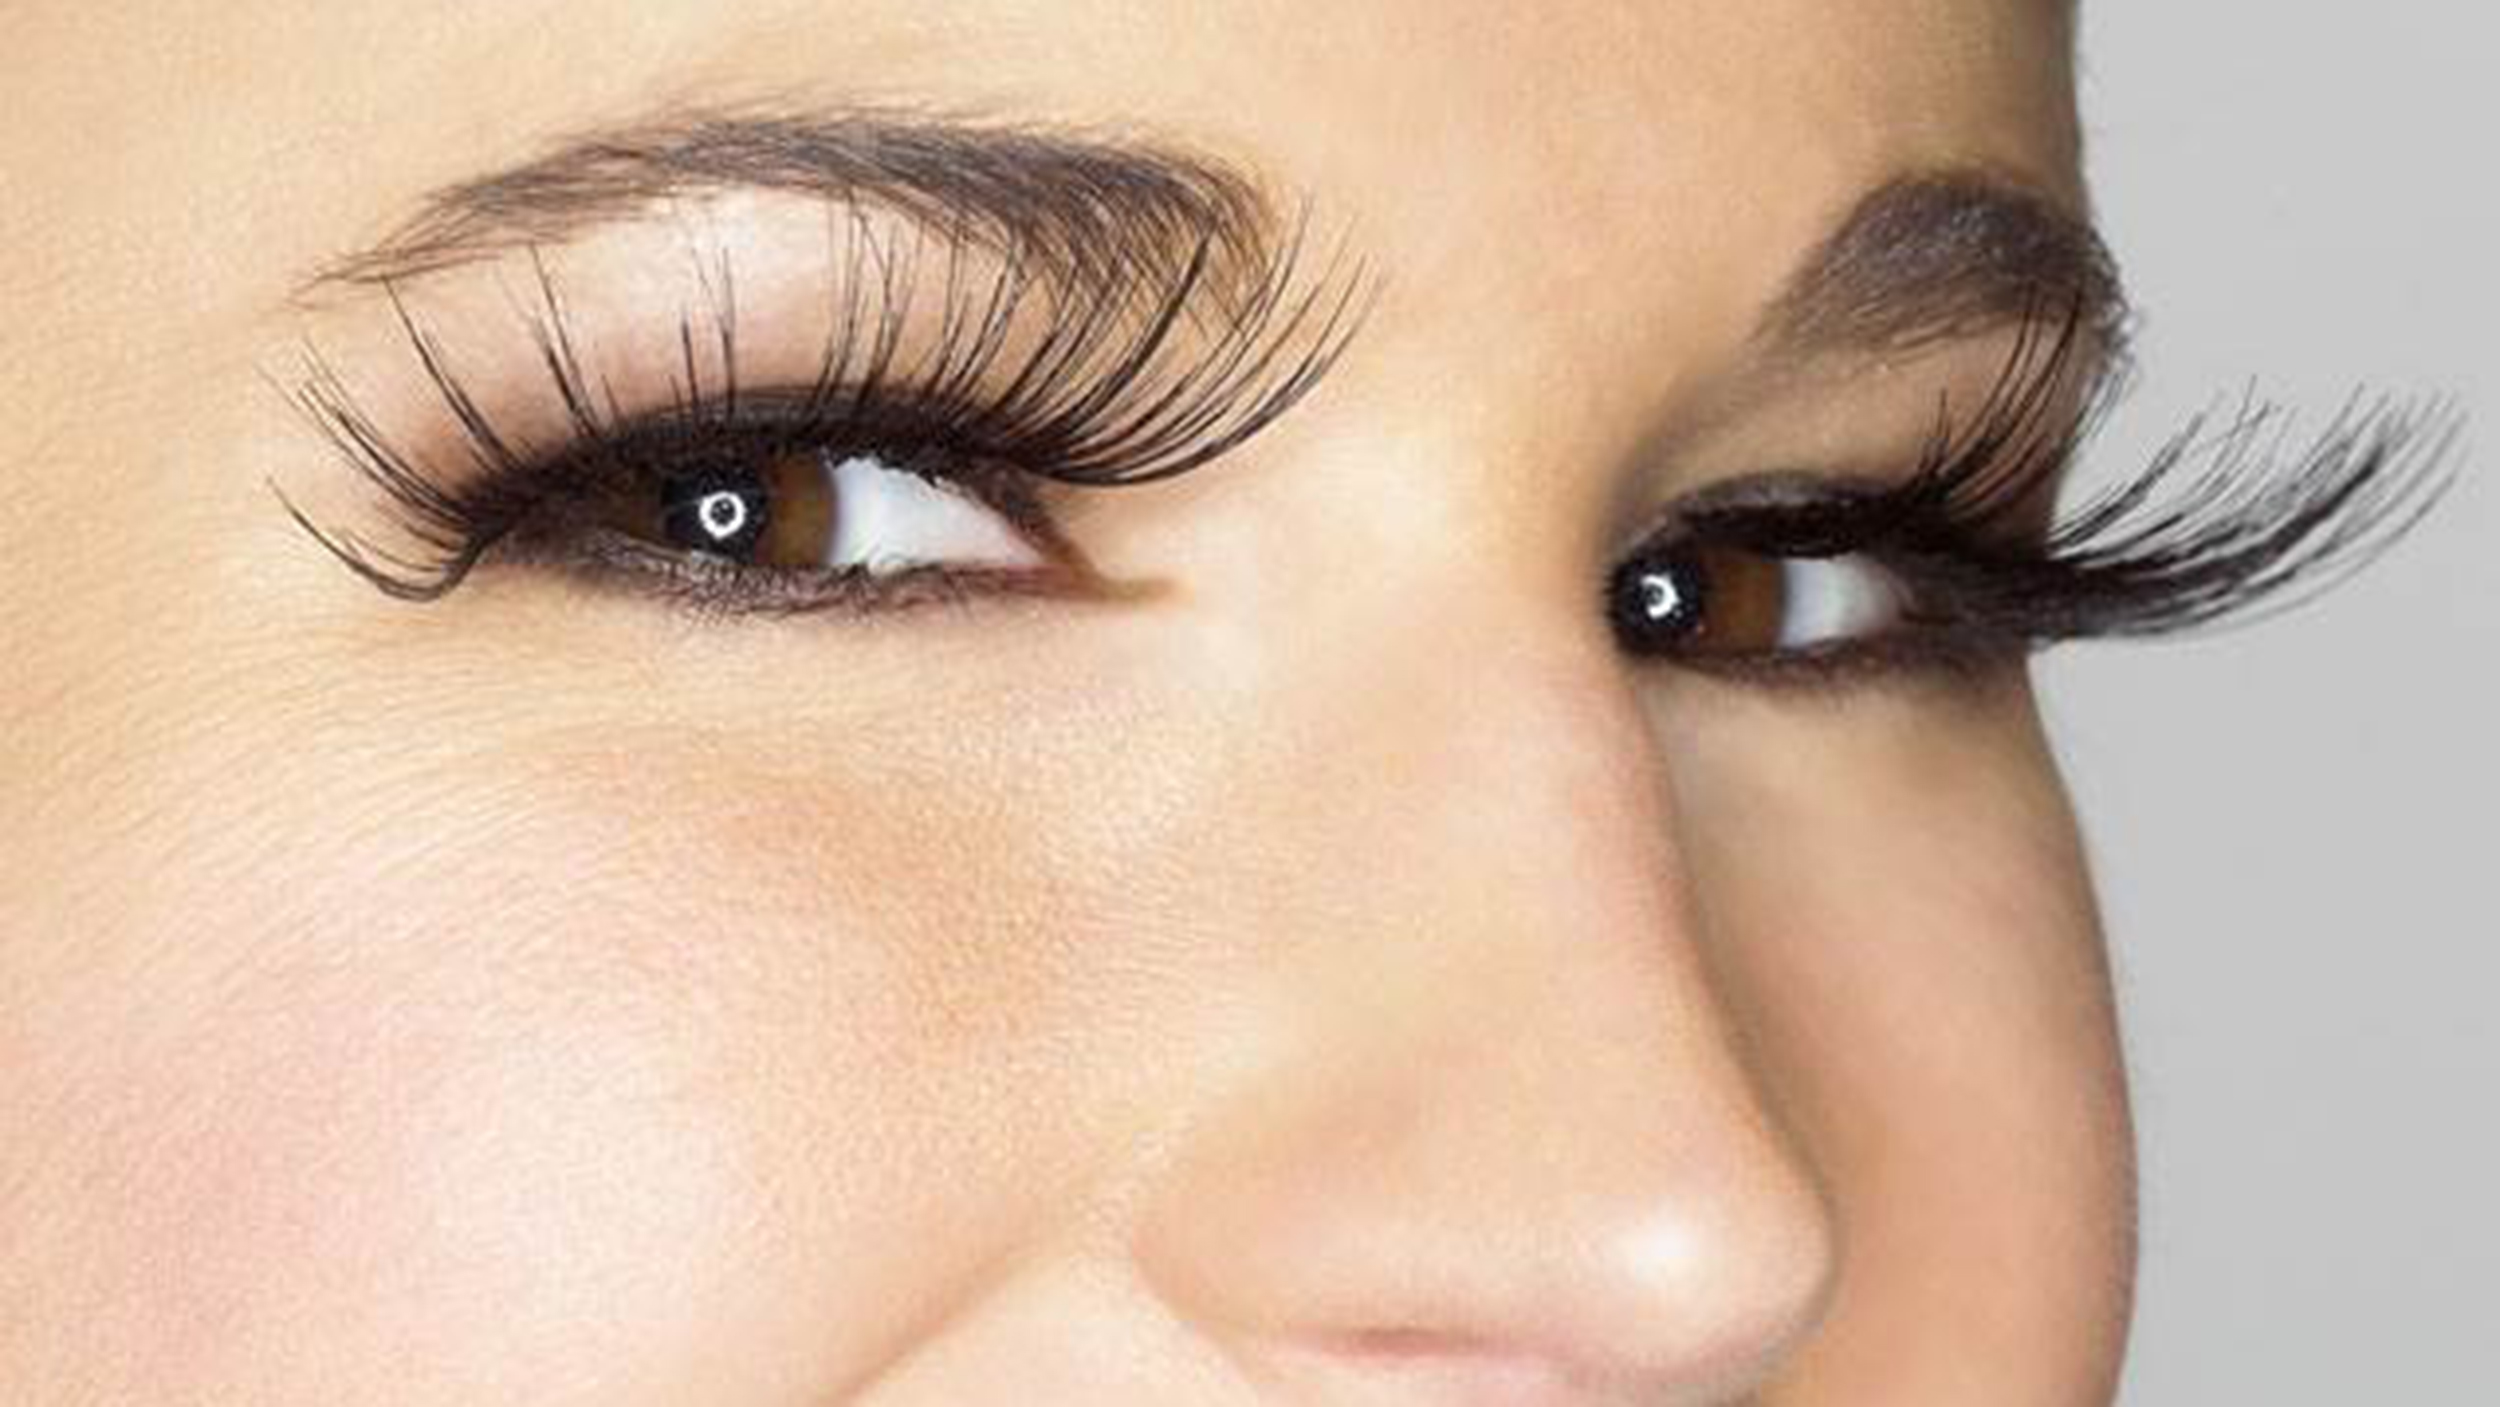 Eyelash perm: What are eyelash perms and are they safe? - TODAY.com